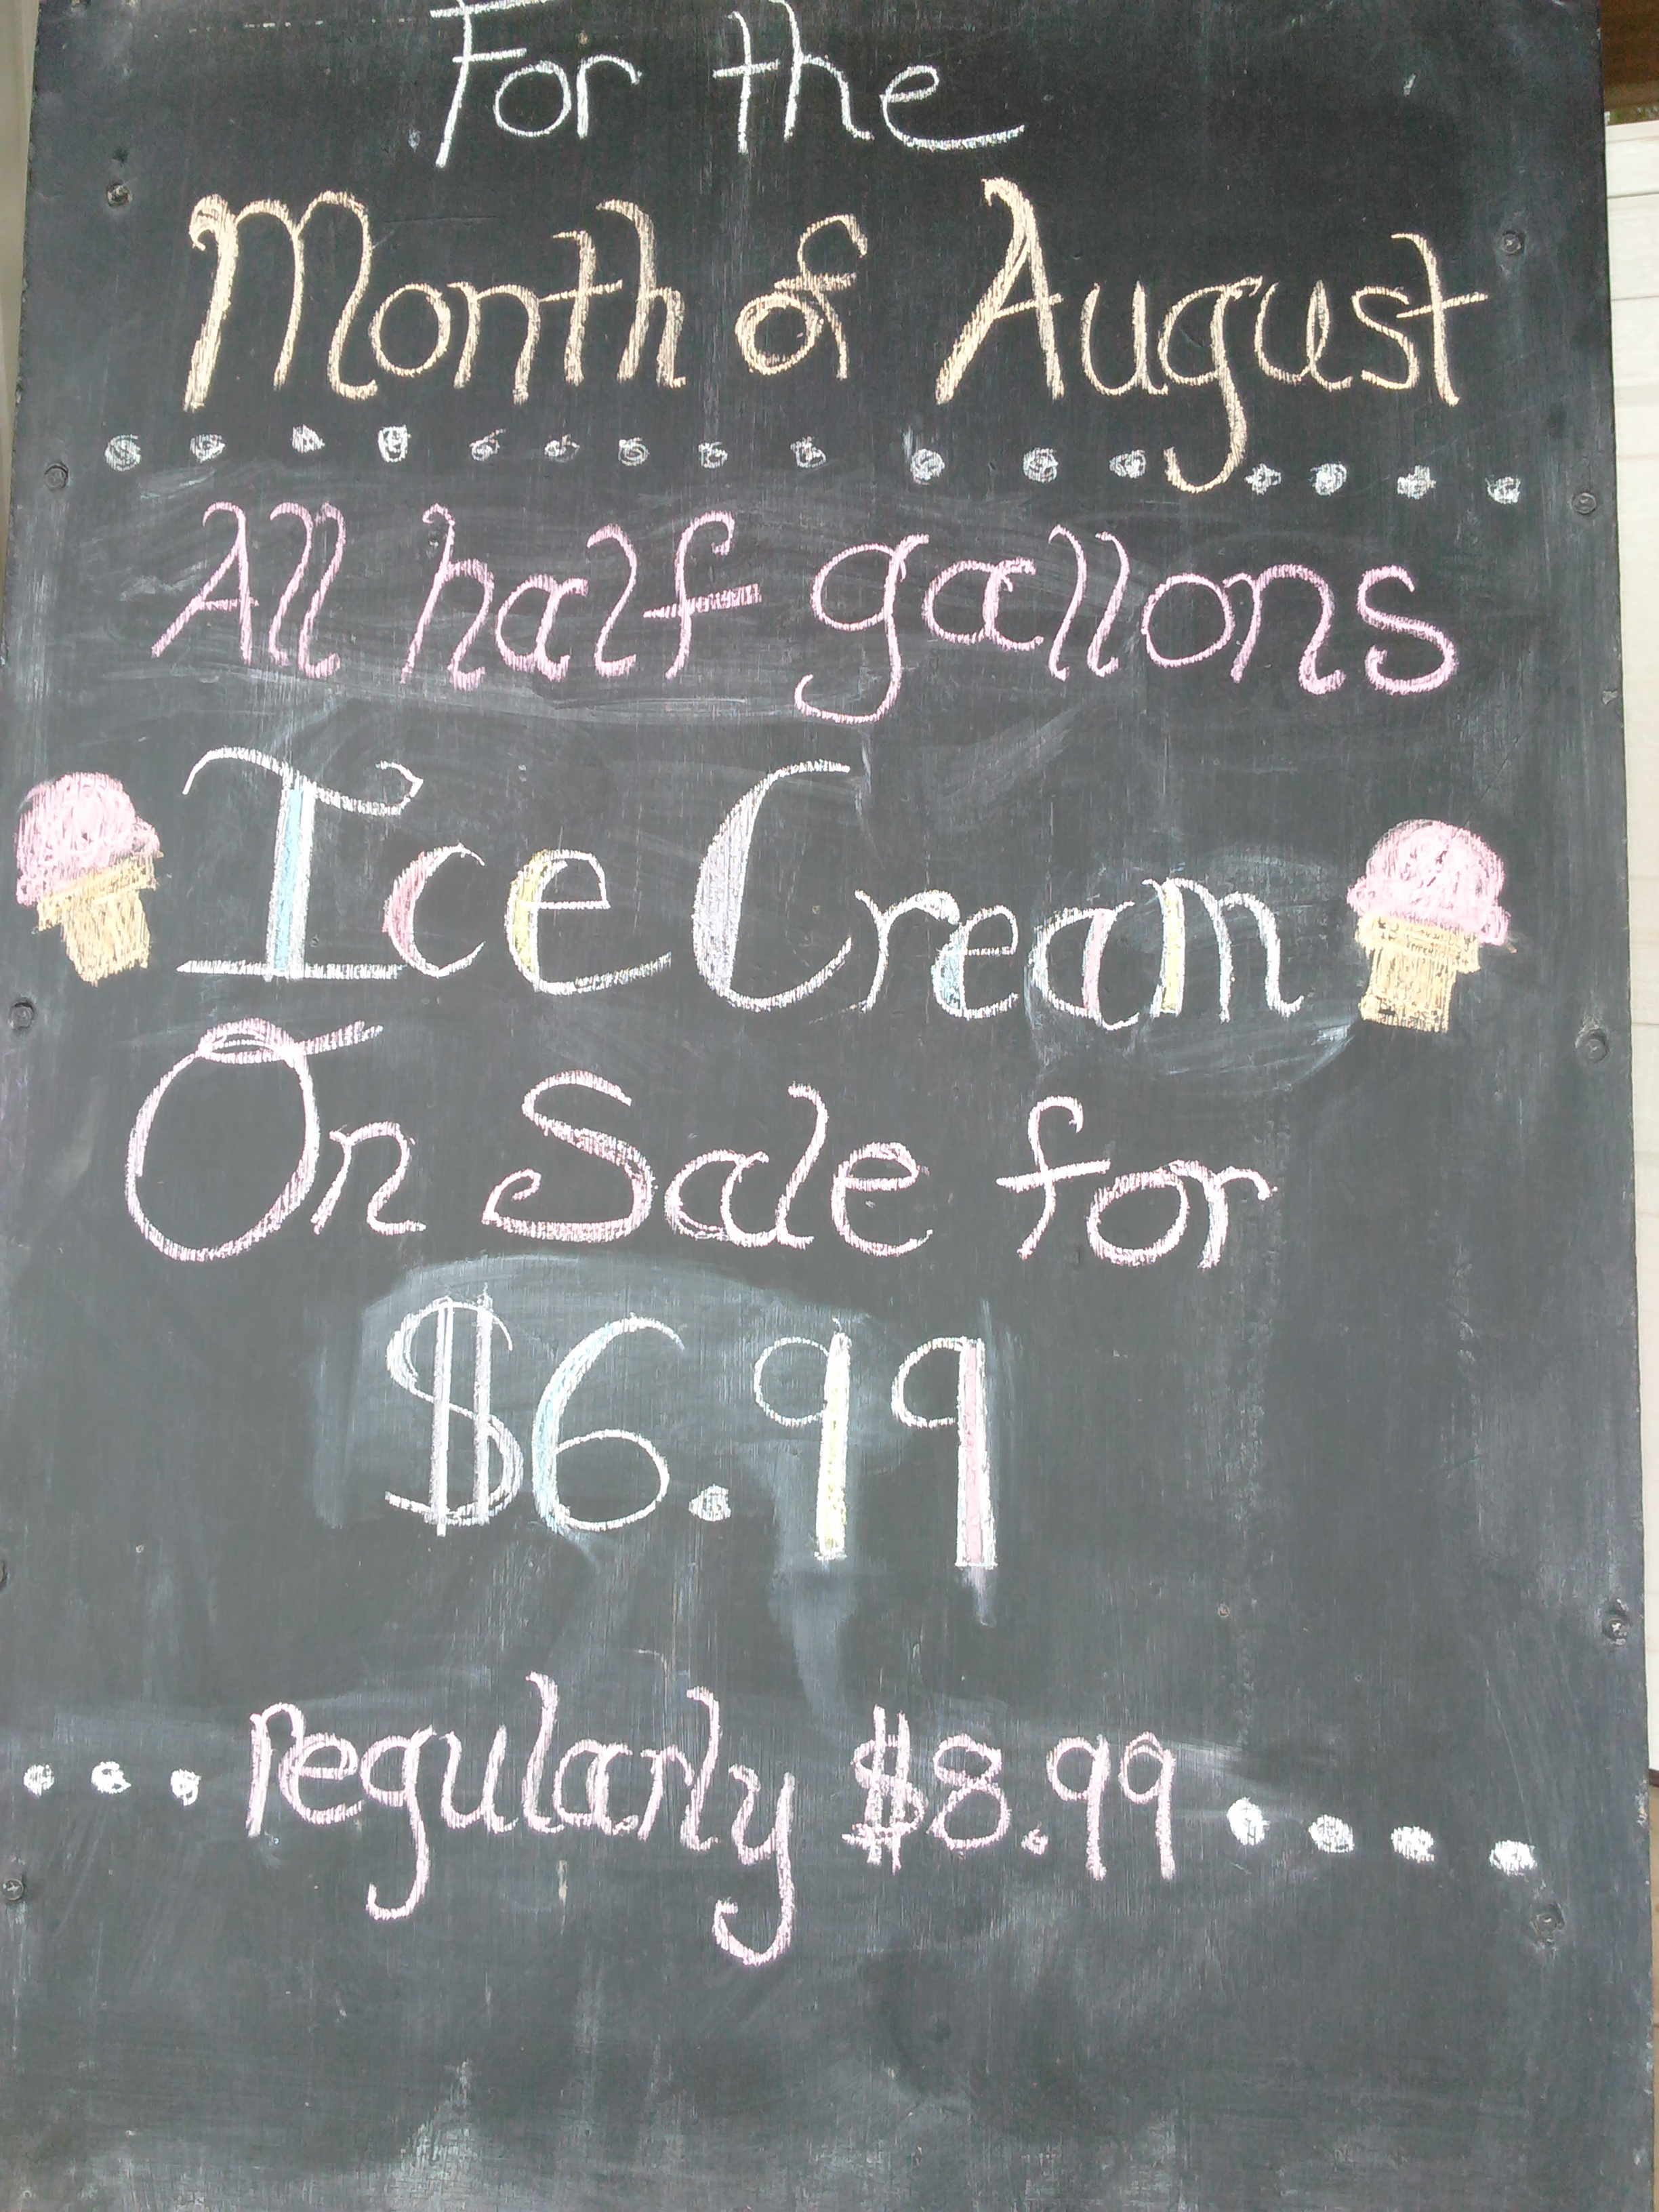 Half Gallons of Ice Cream on Sale!!